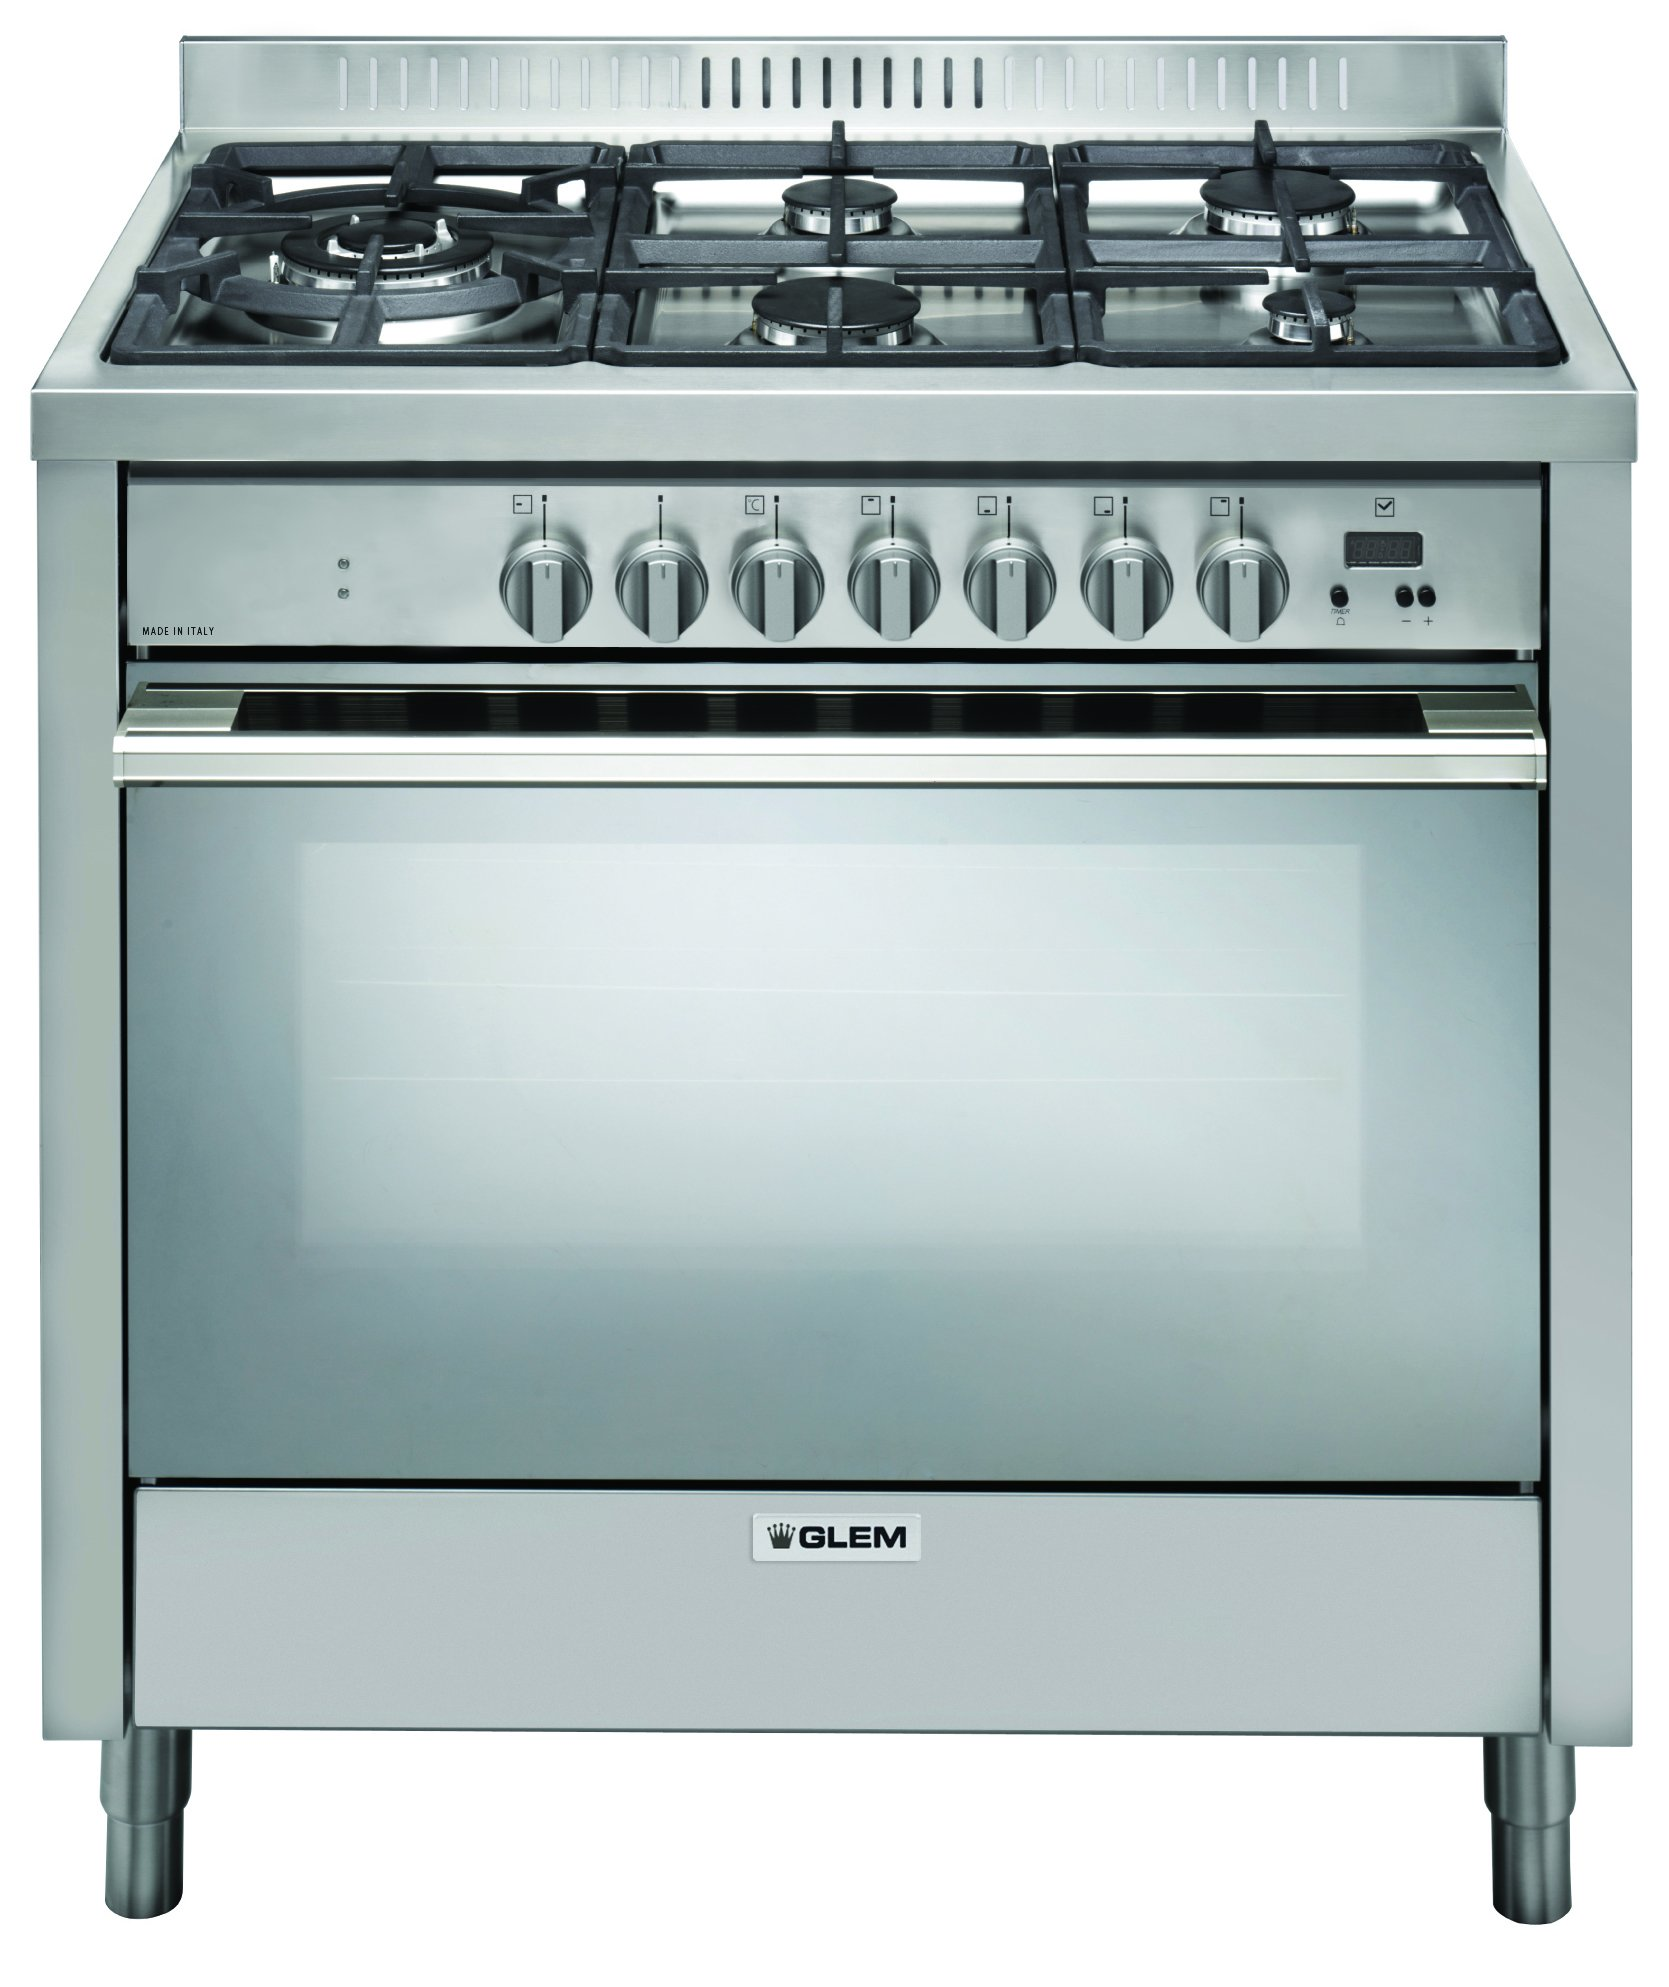 Glem IT965PROEI2 Freestanding Dual Fuel Oven and Stove | Appliances ...